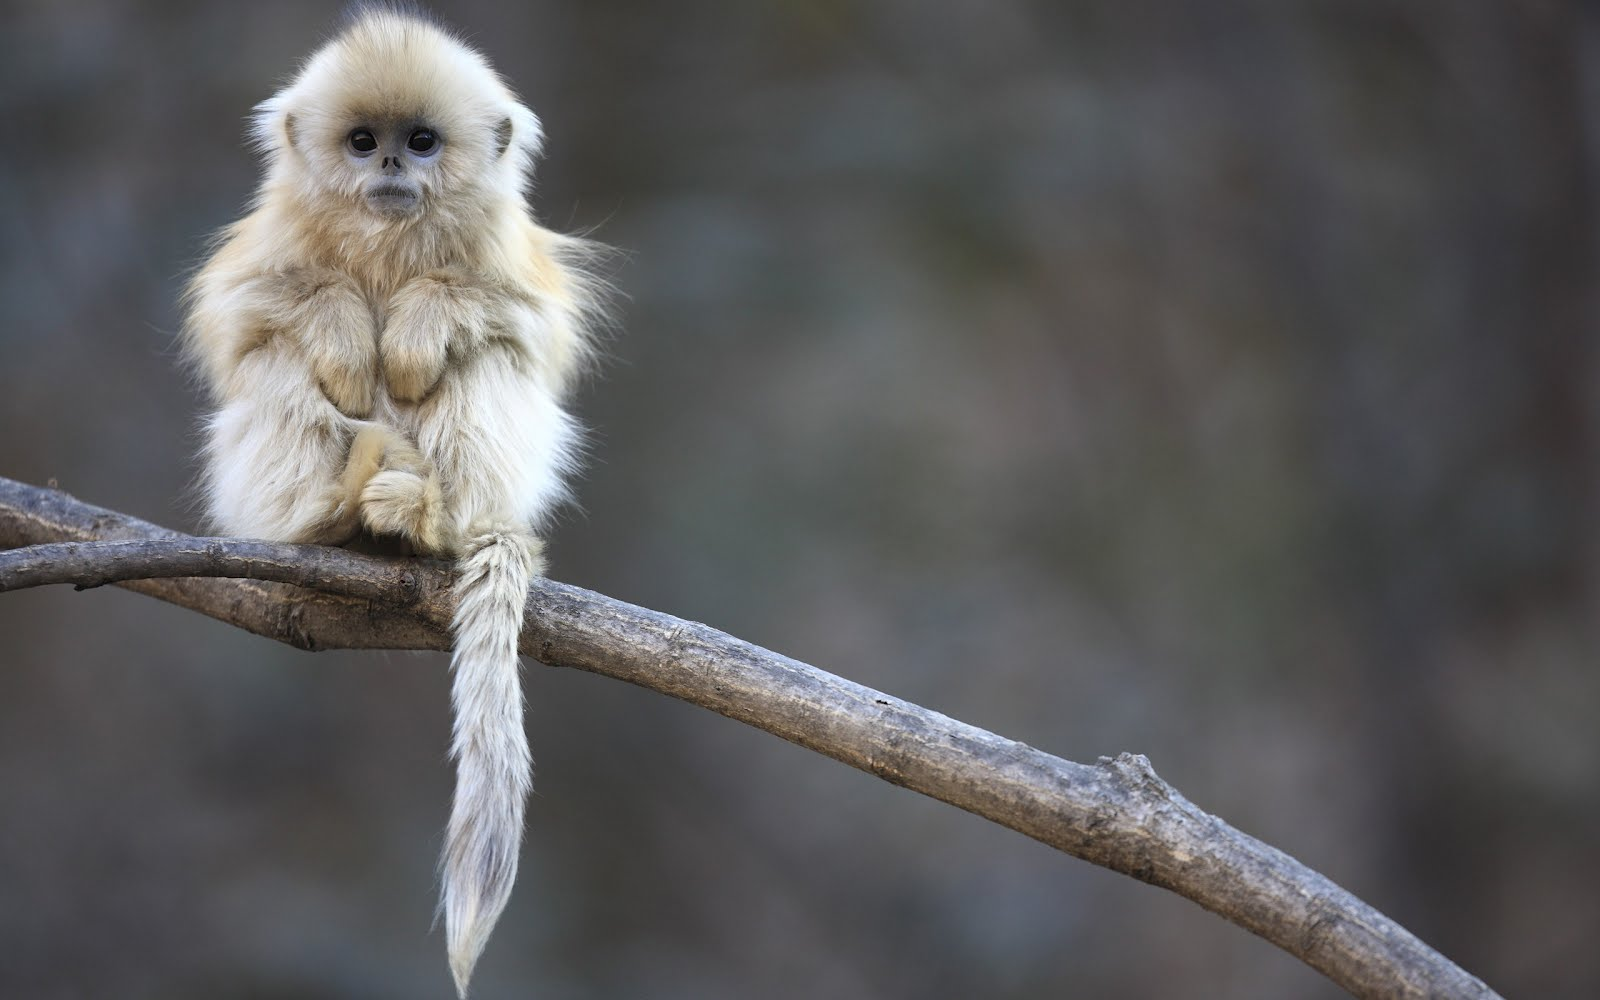 Un hermoso mono - Cute little monkey